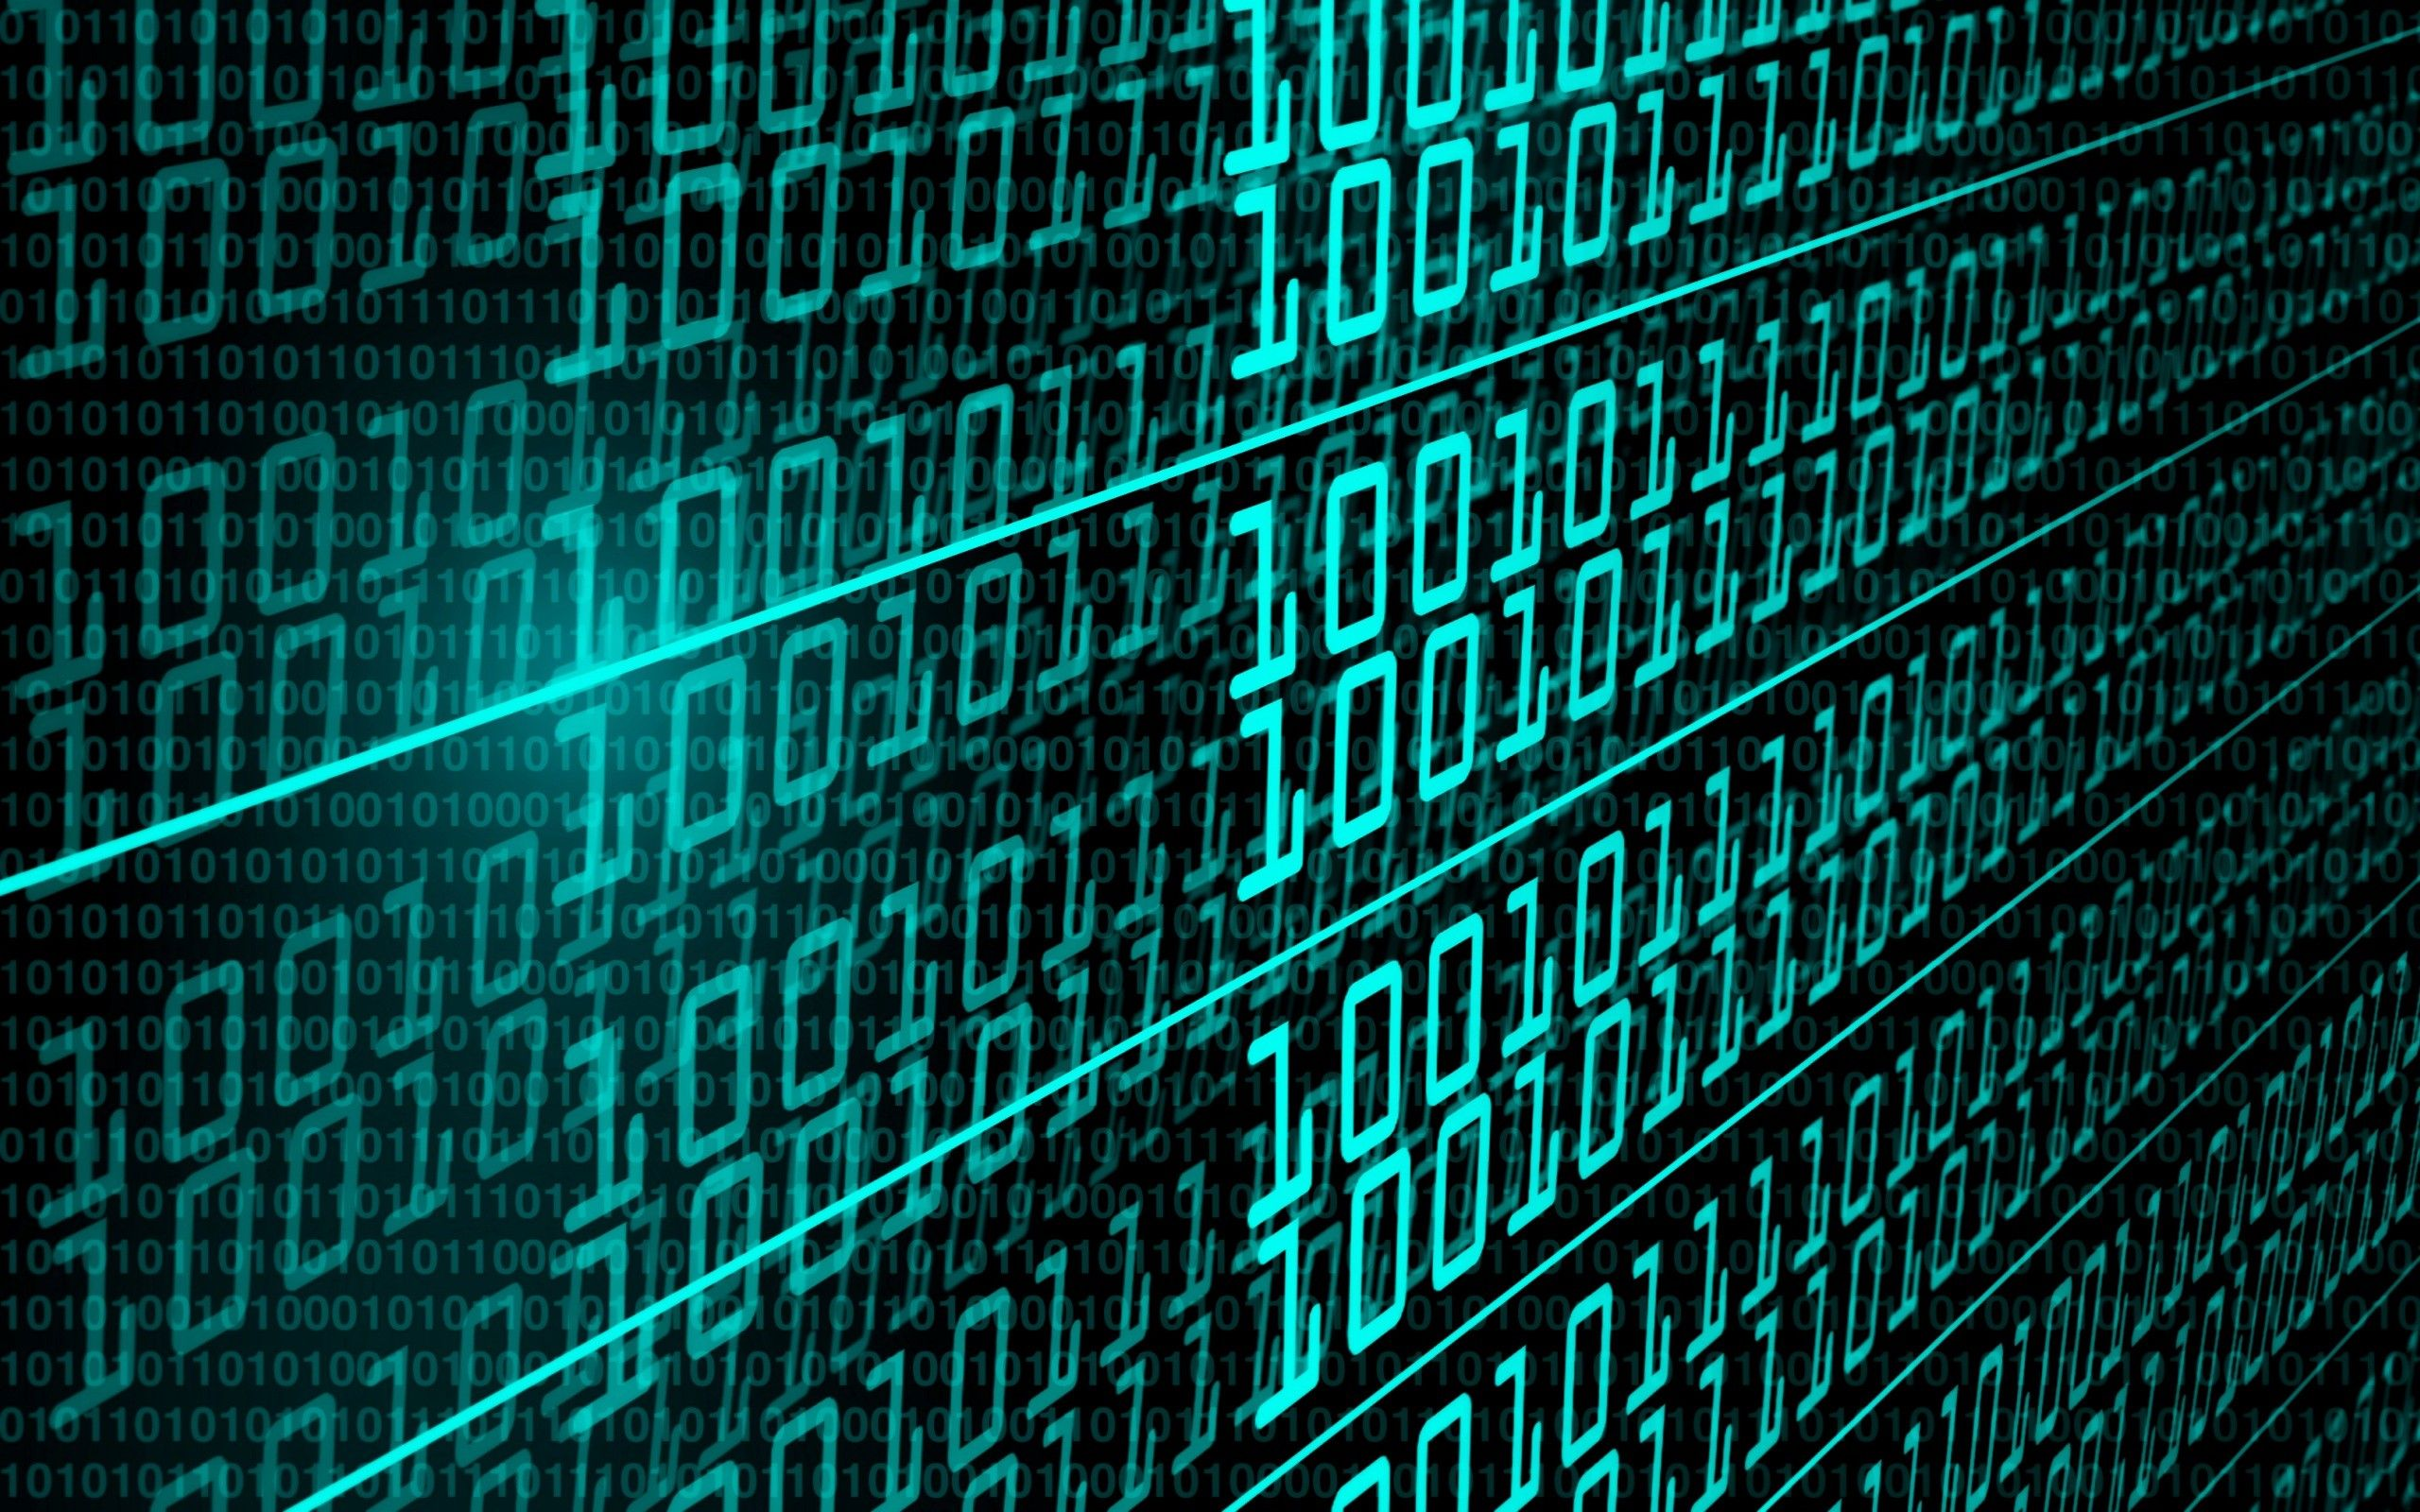 Free Binary Code Computer Hd Wallpaper All Free Picture Coding Code Wallpaper Computer Science